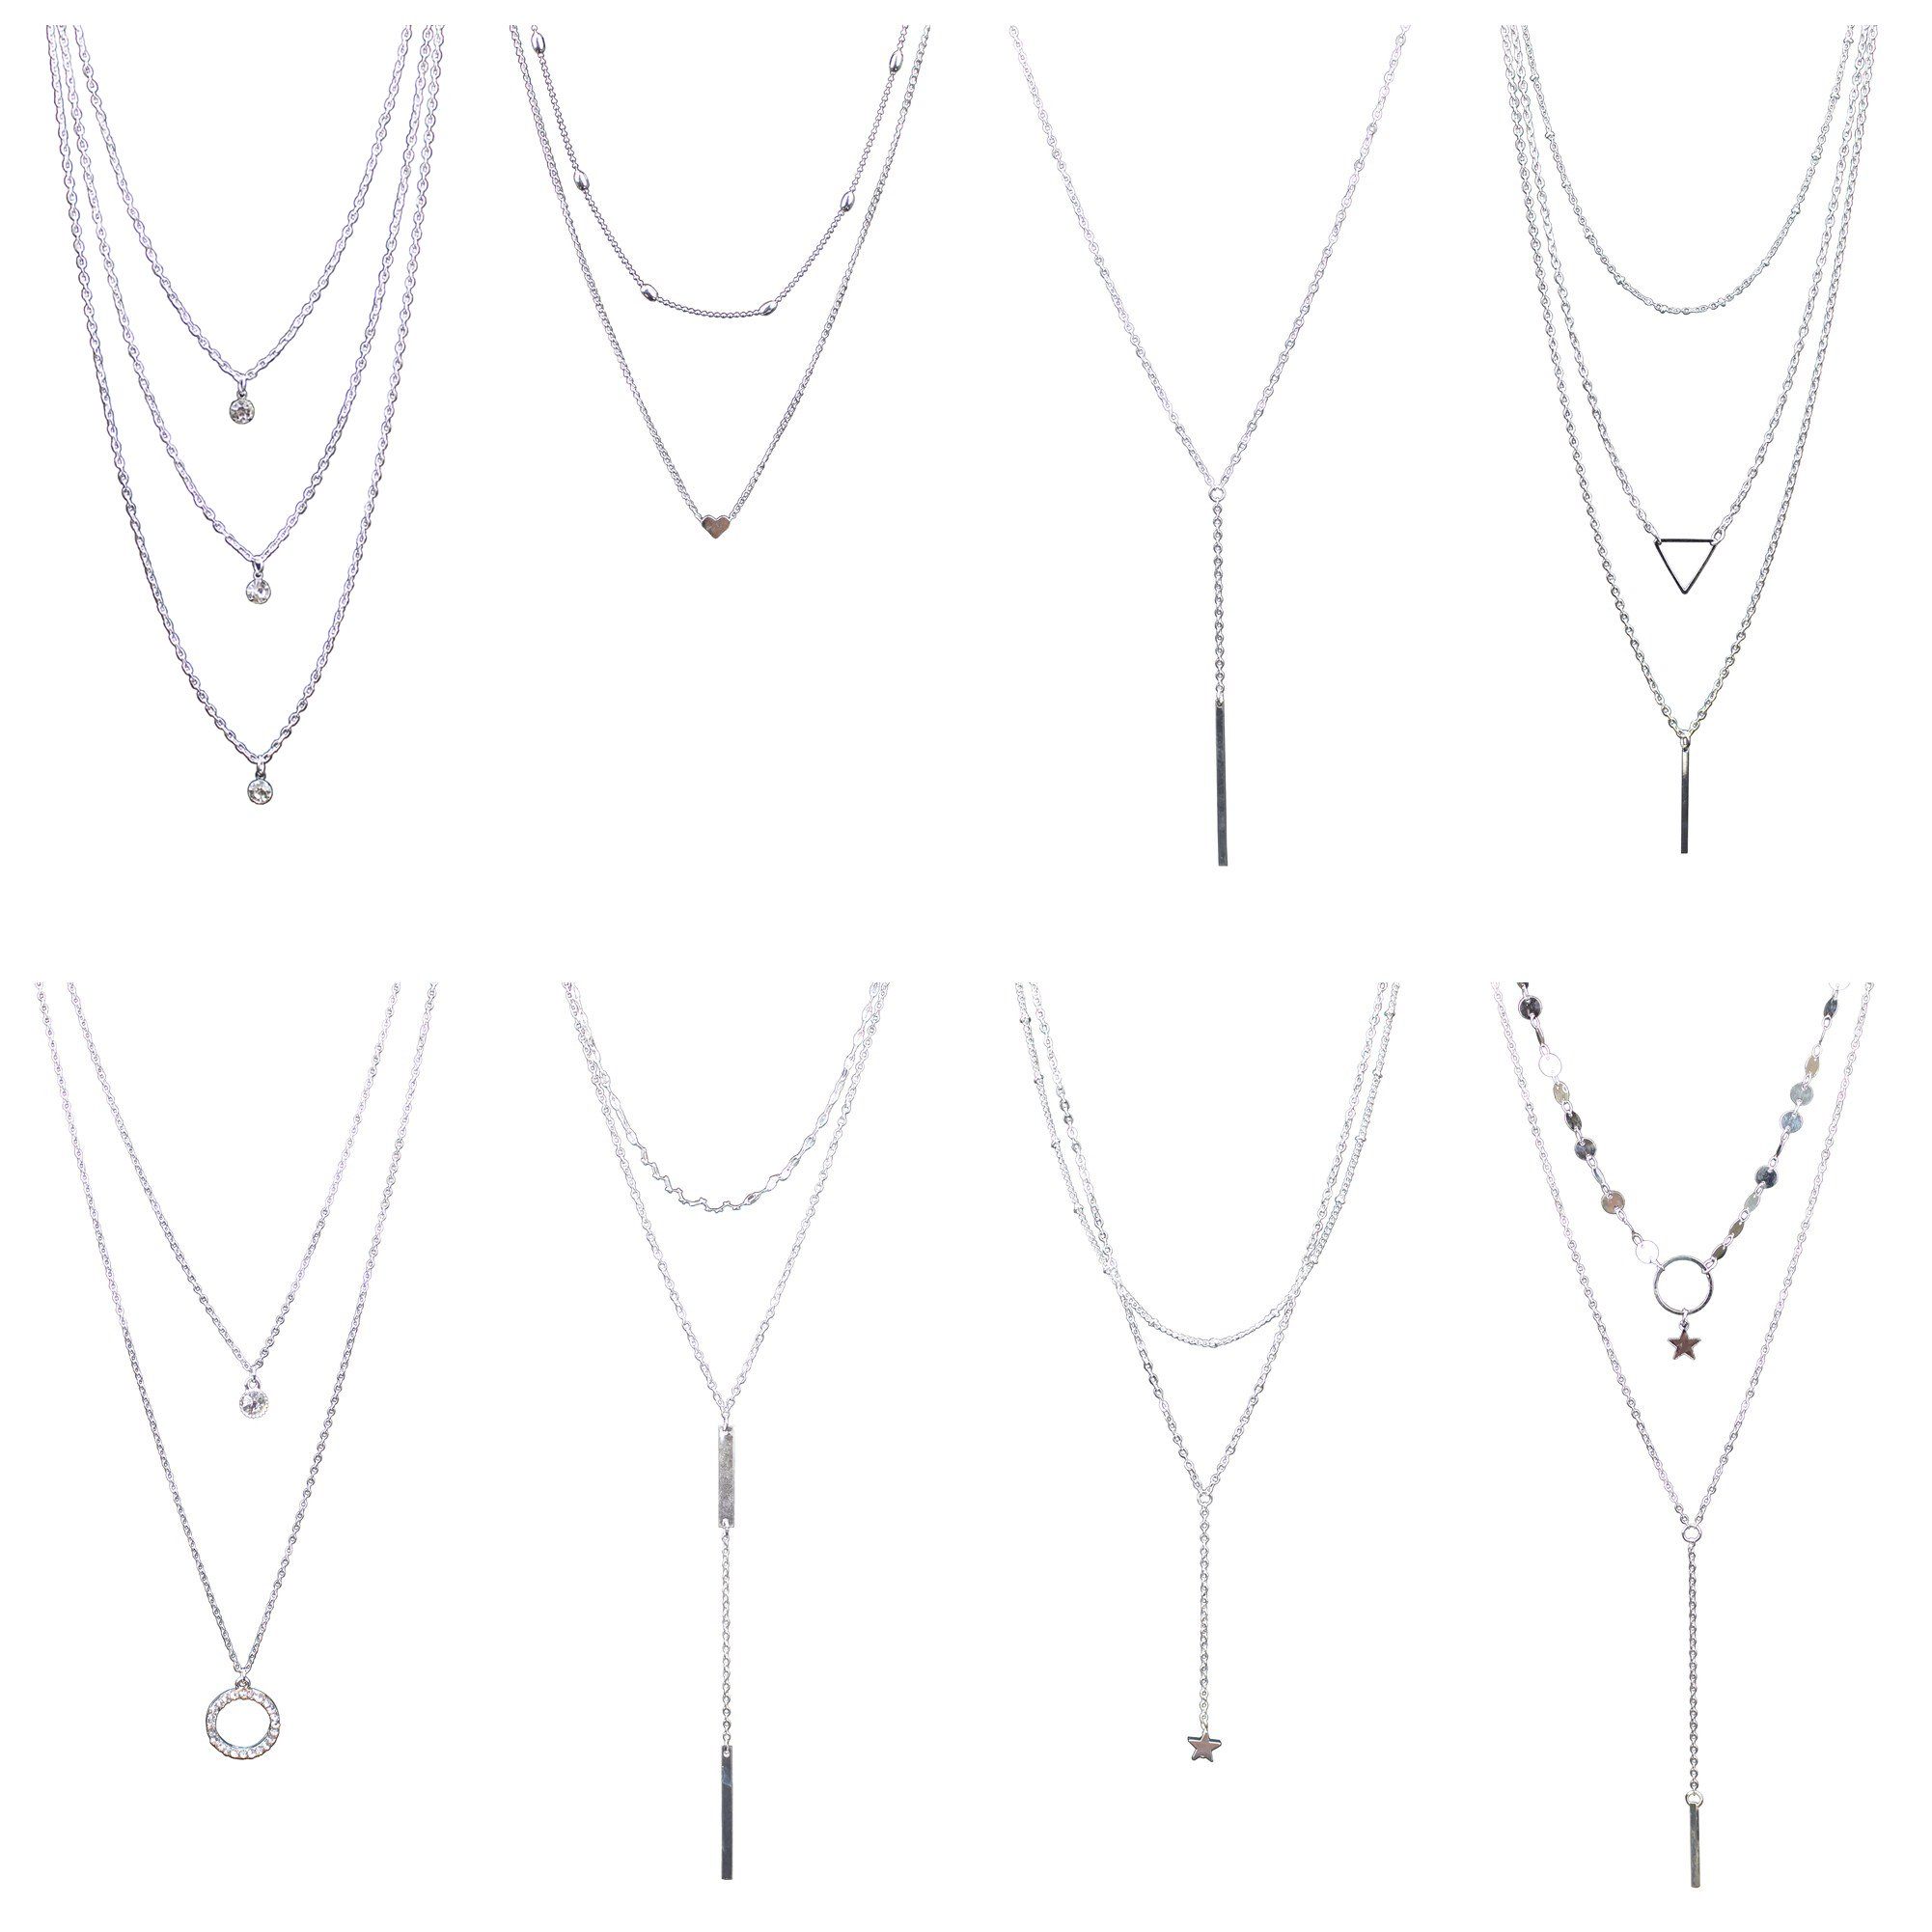 Coolcoco Fashion Metal Silver Choker Necklace Set with Pendant for Women (8 Pieces/Set)